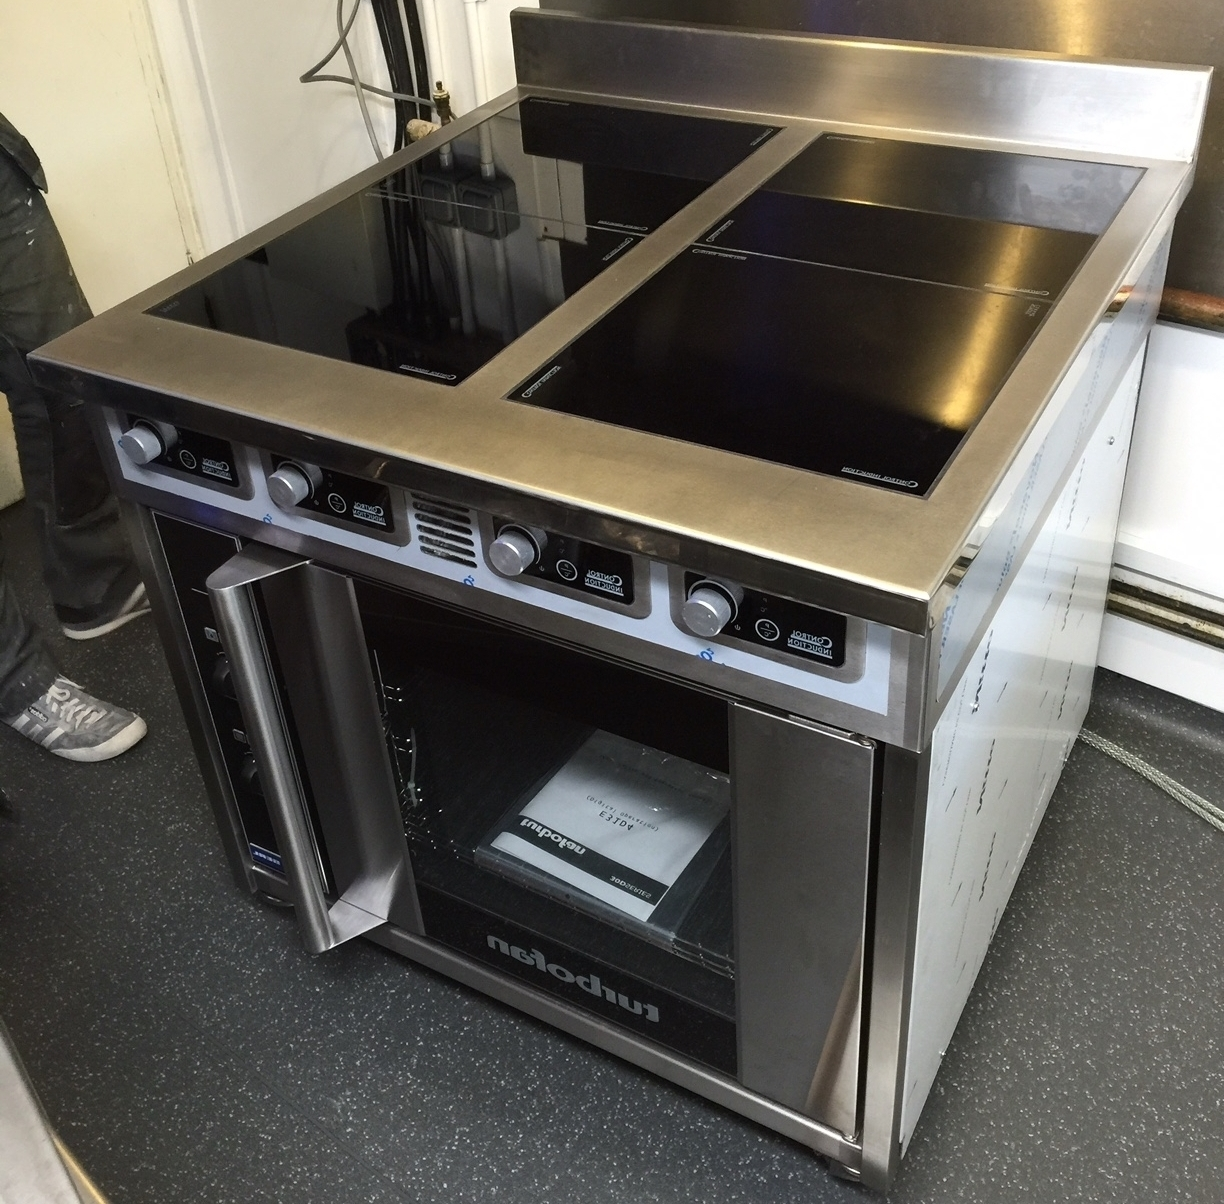 Four ring induction stove with oven